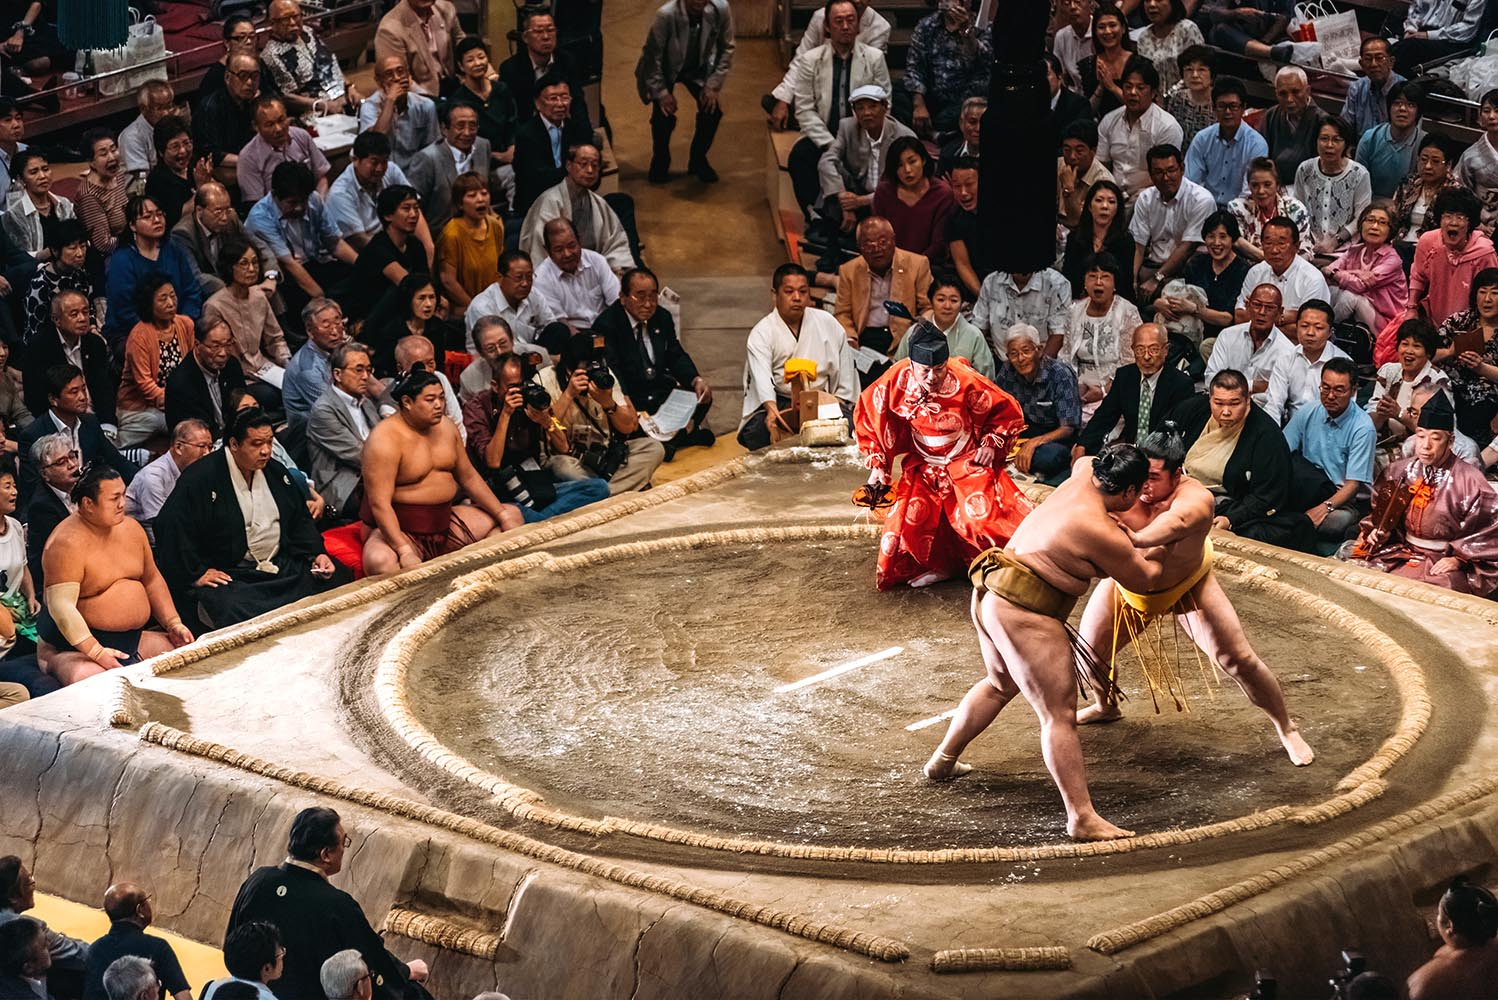 Arena for traditional Sumo wrestling in Tokyo, Japan